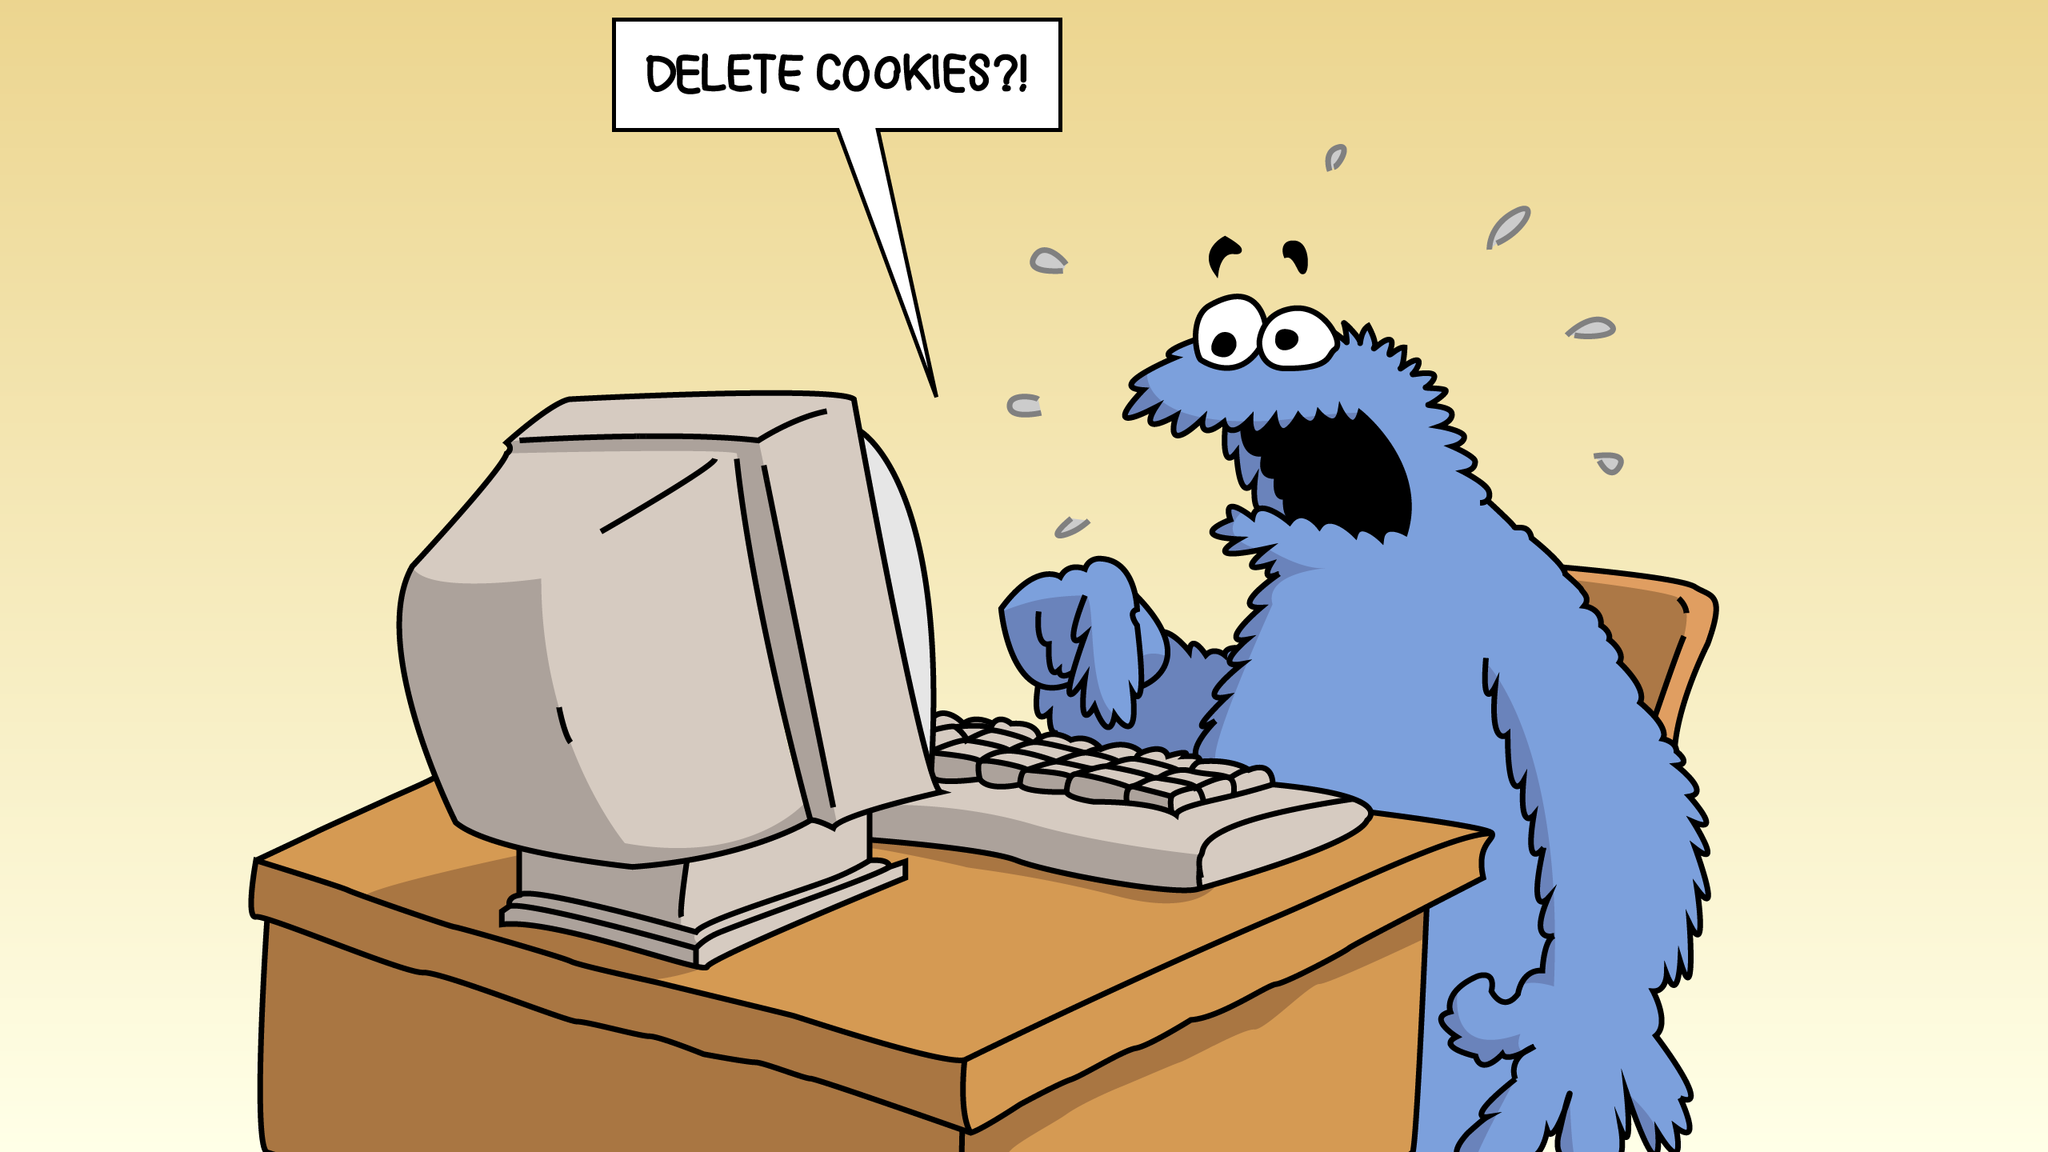 Delete-cookies-monster-cartoon.png